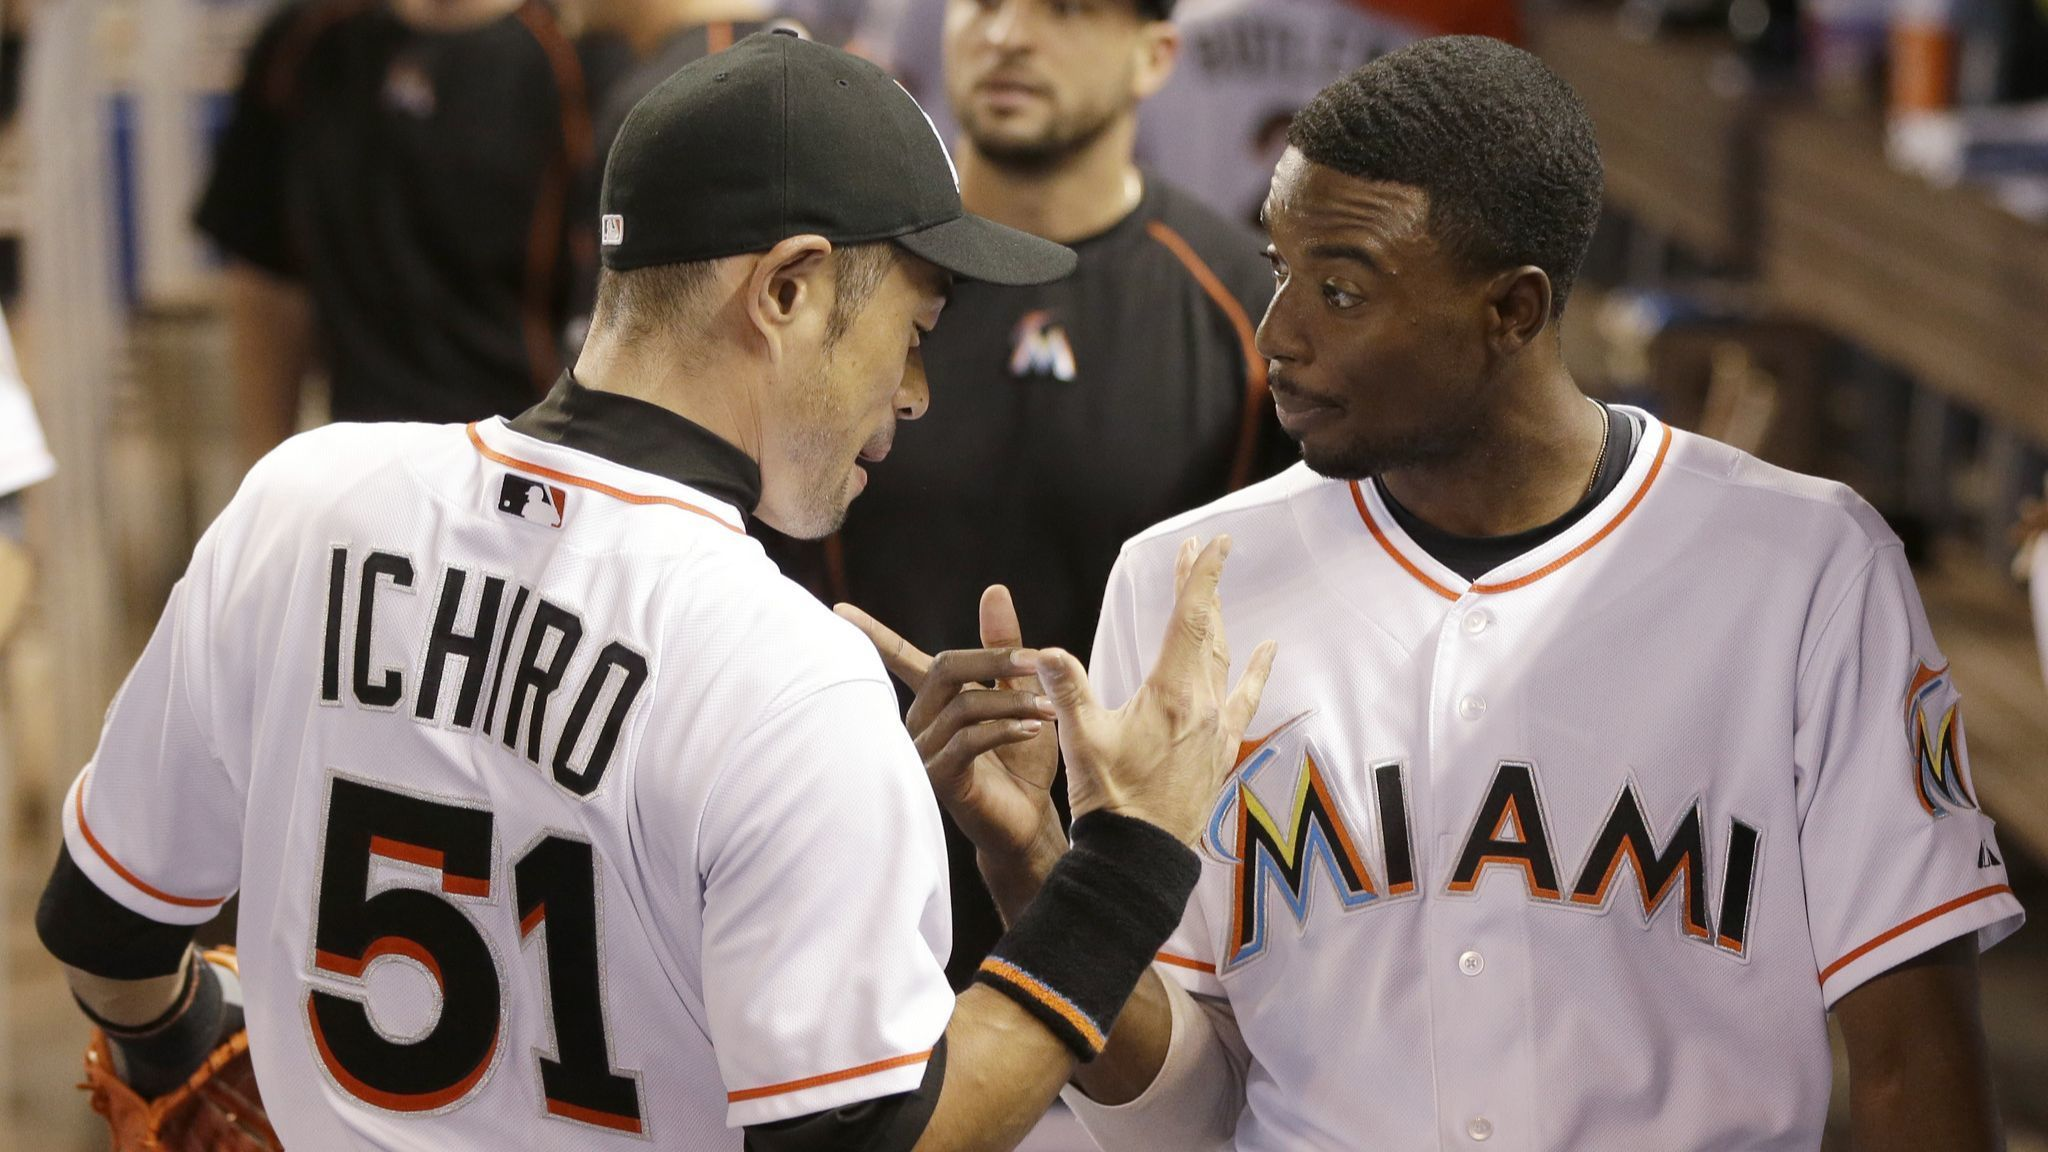 Dee Gordon honored former Marlins' teammate Ichiro with an amazing newspaper ad